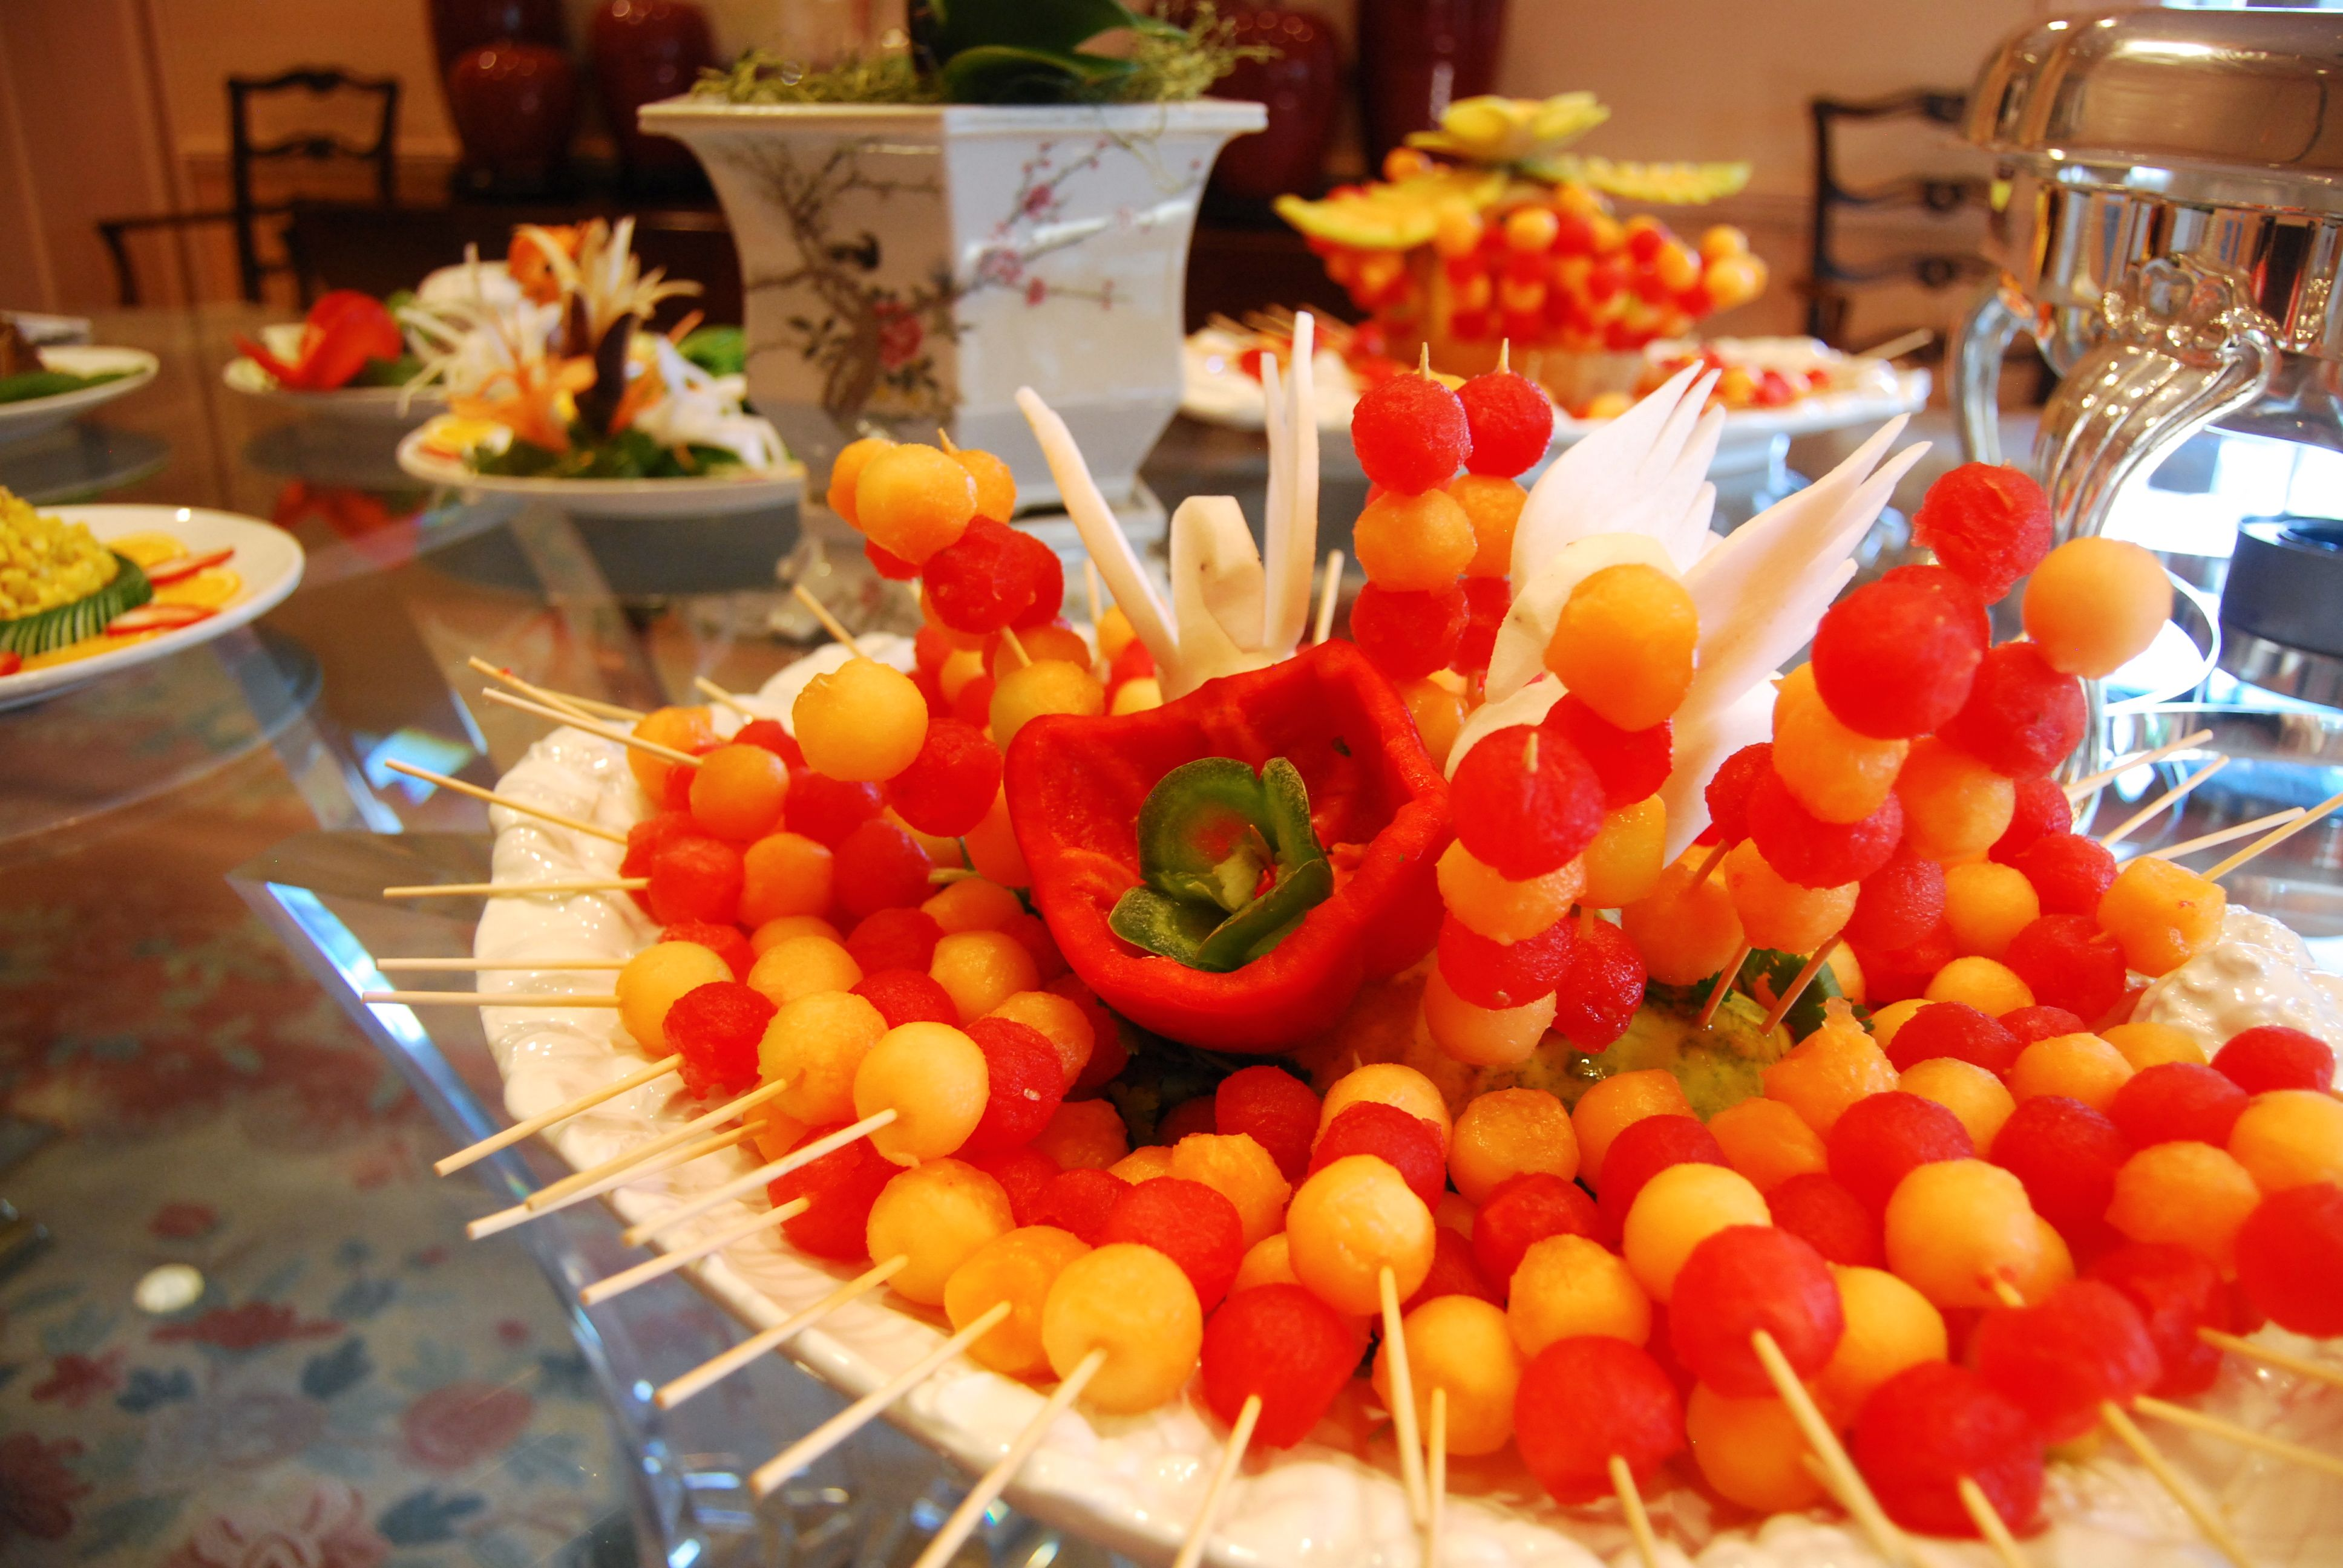 Beautiful fruit skewer platter Chinese/Asian Themed